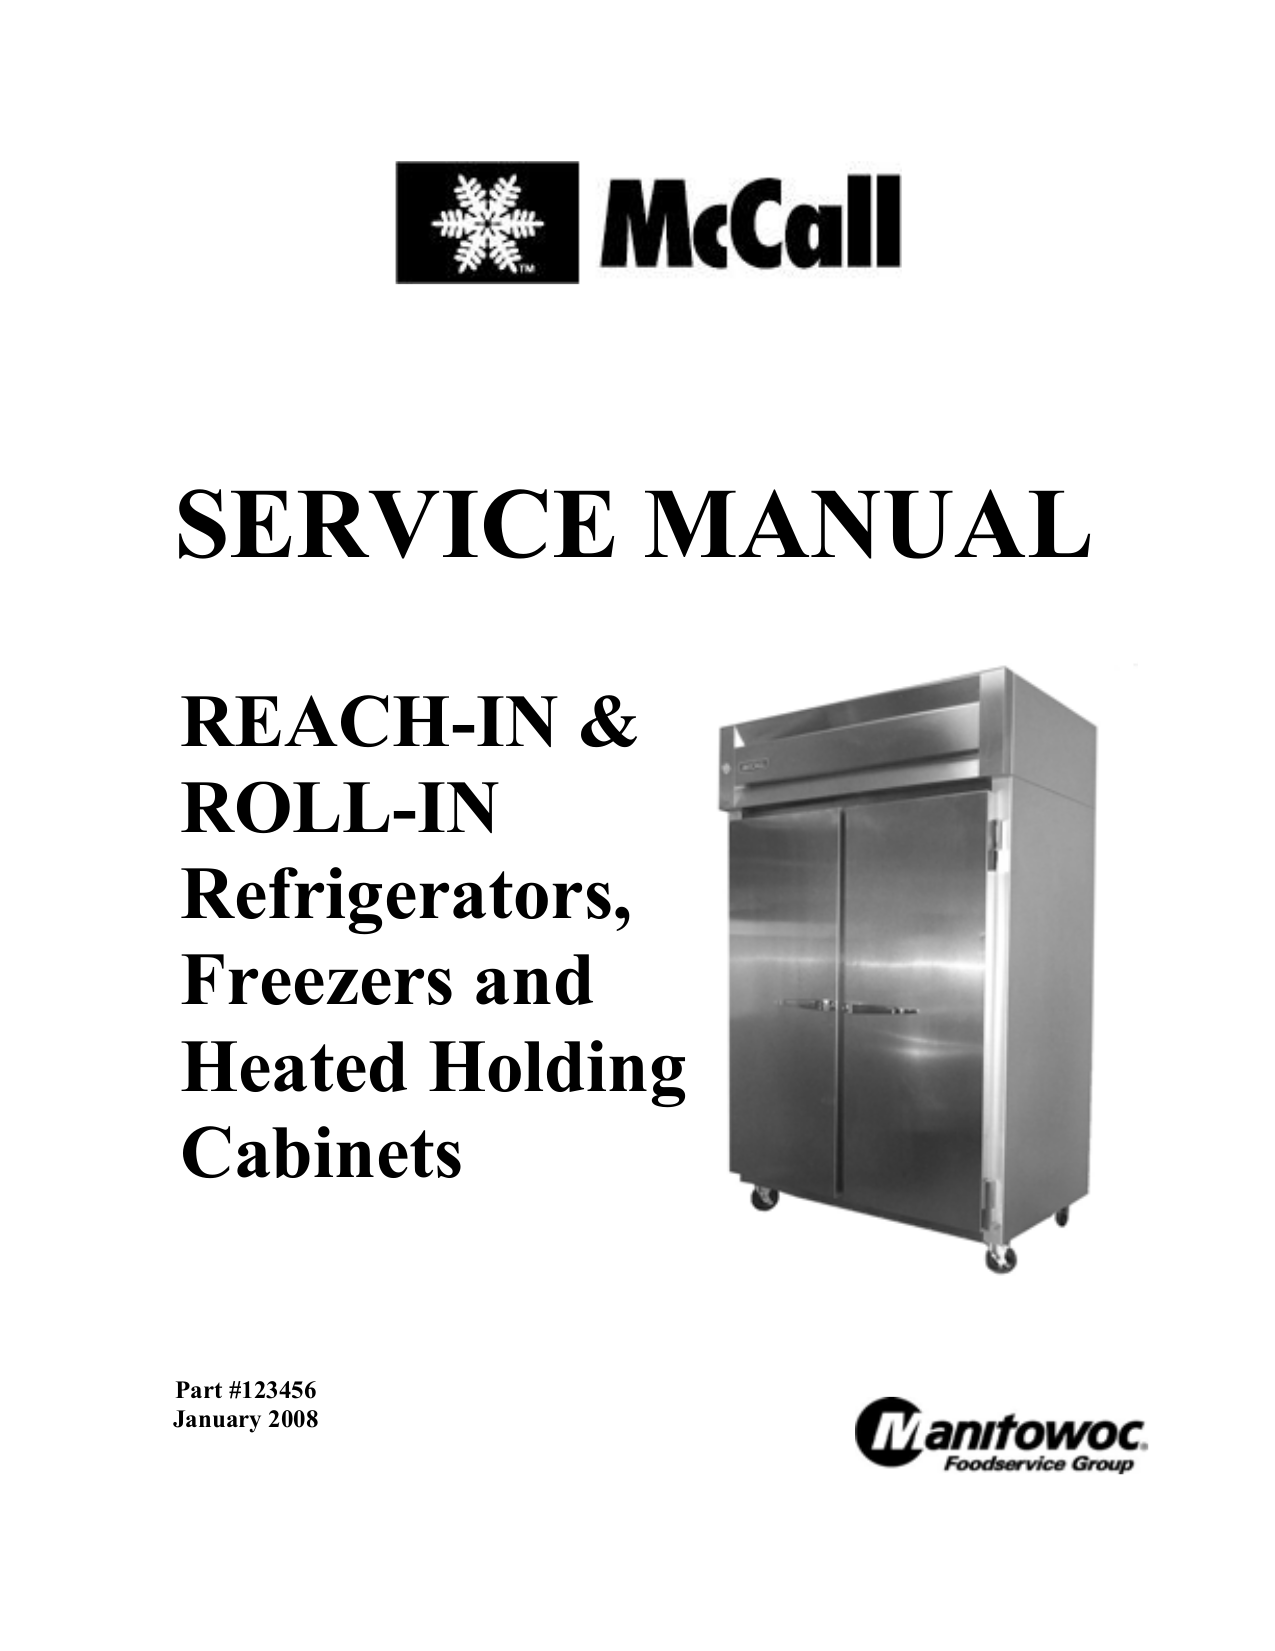 pdf for McCall Refrigerator L1-1002 manual